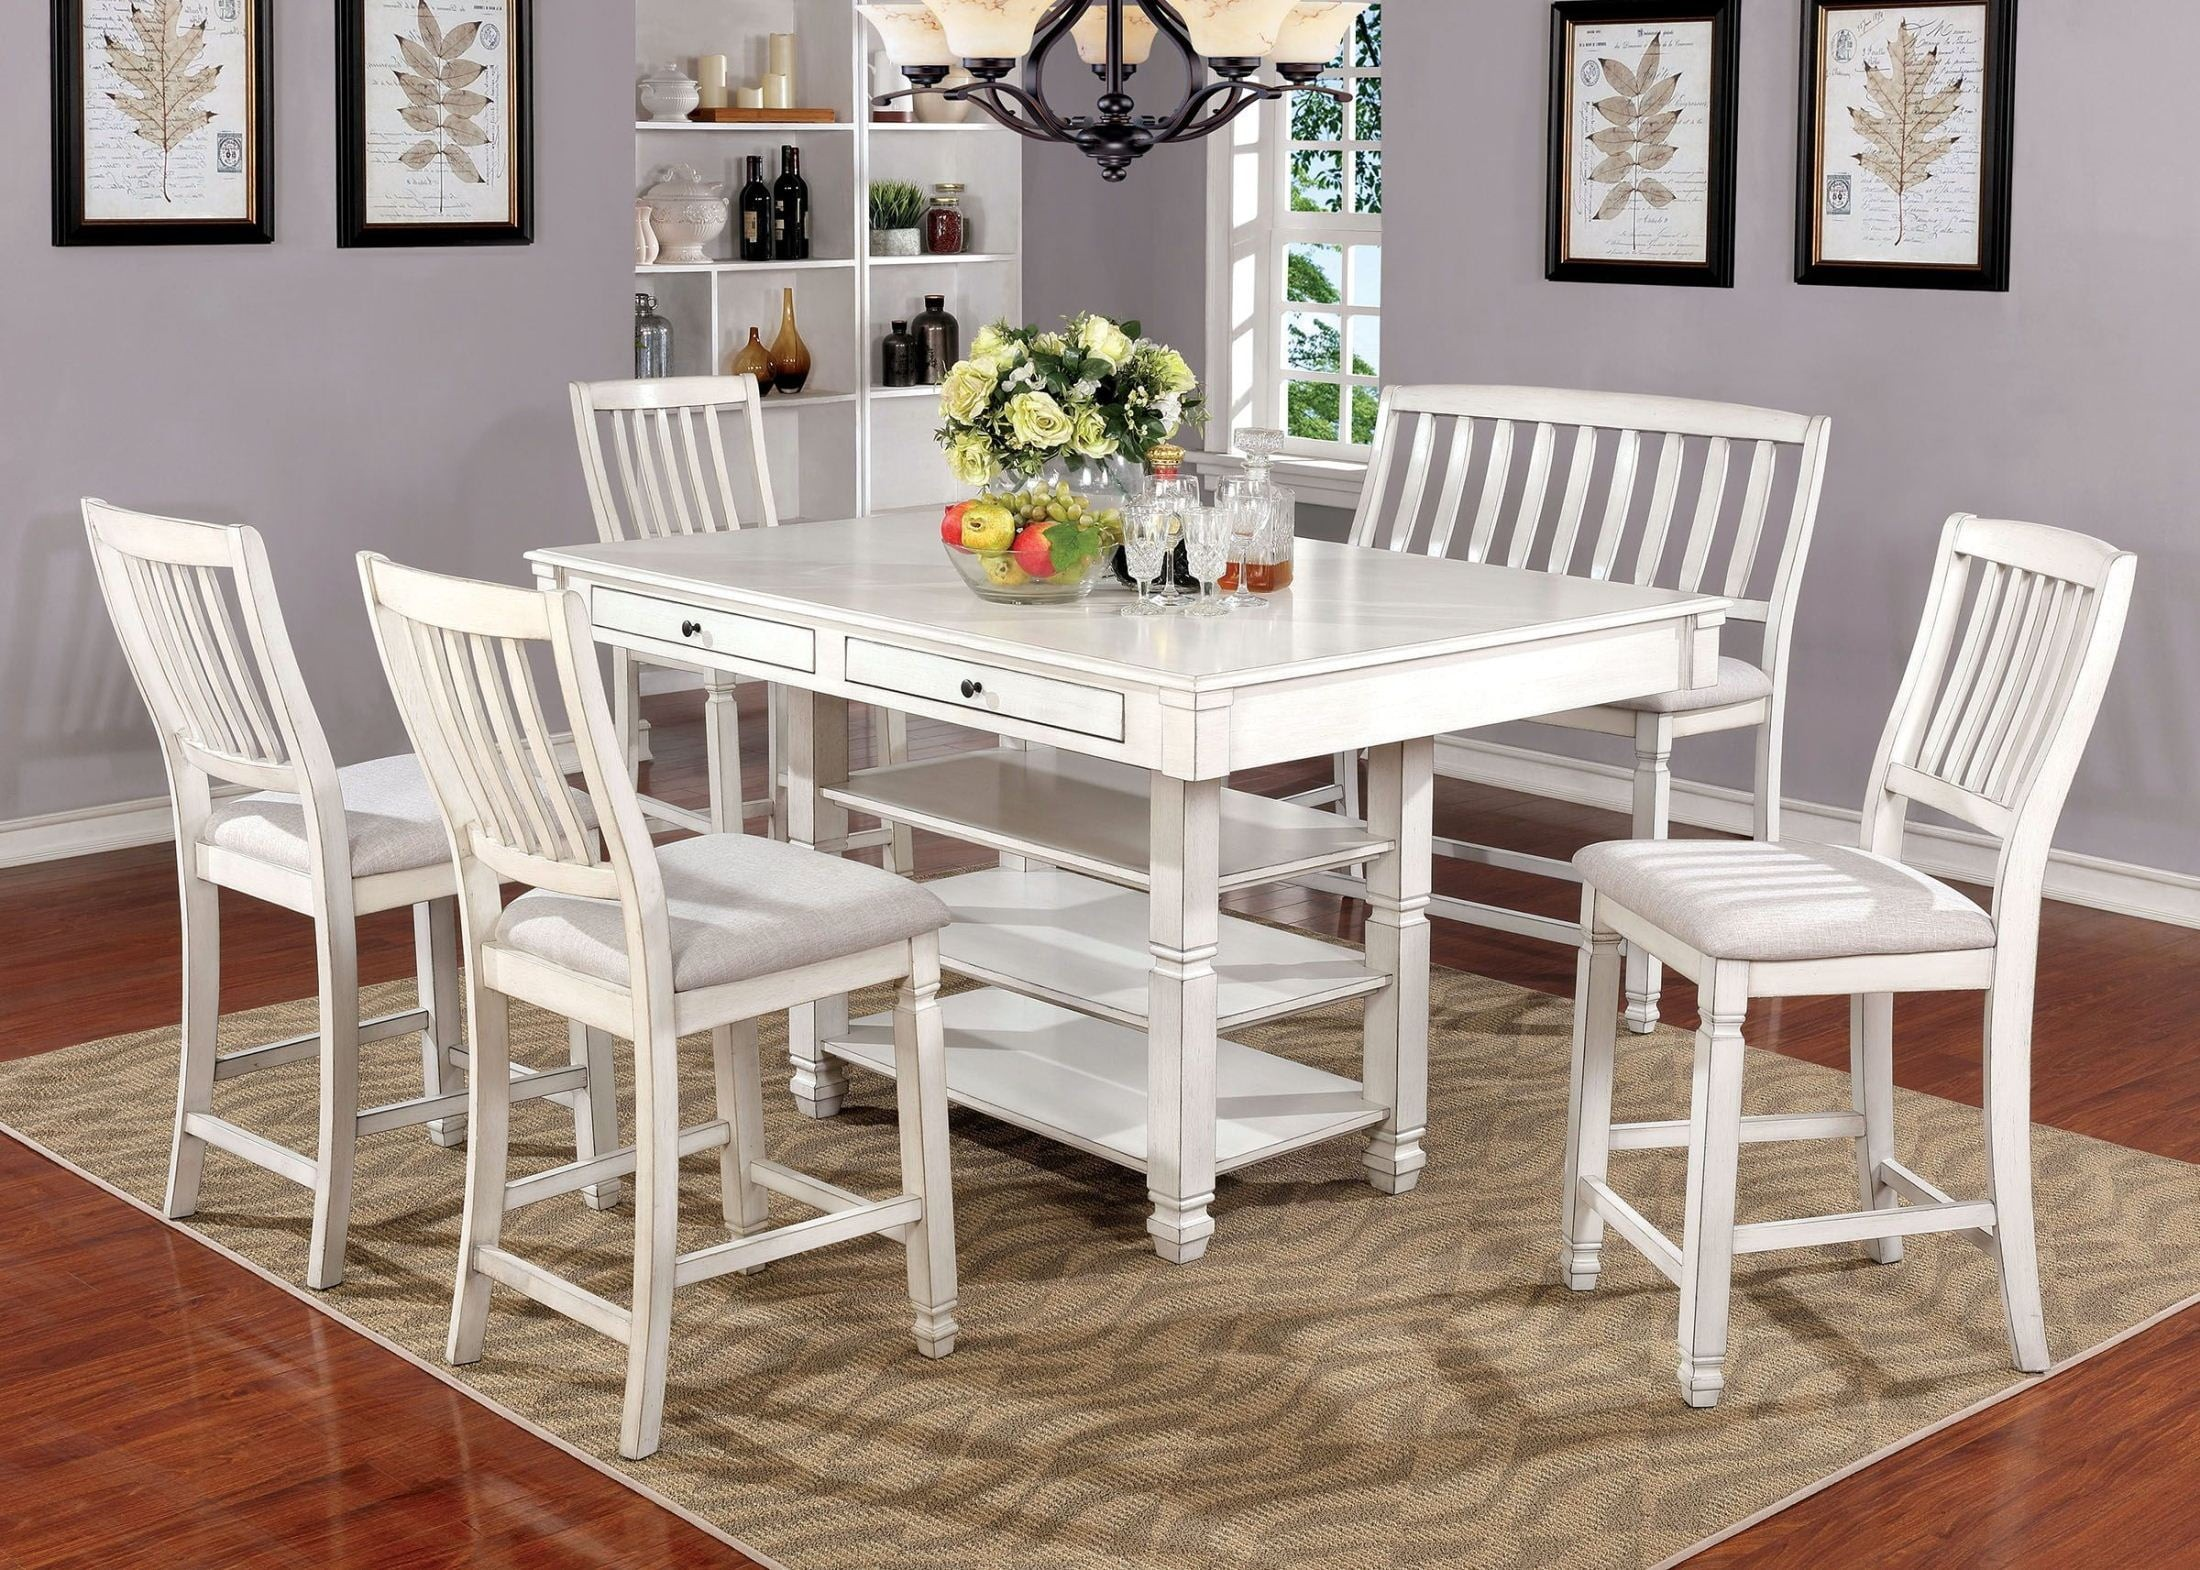 Merveilleux Kaliyah Antique White Counter Height Dining Room Set From Furniture Of  America | Coleman Furniture